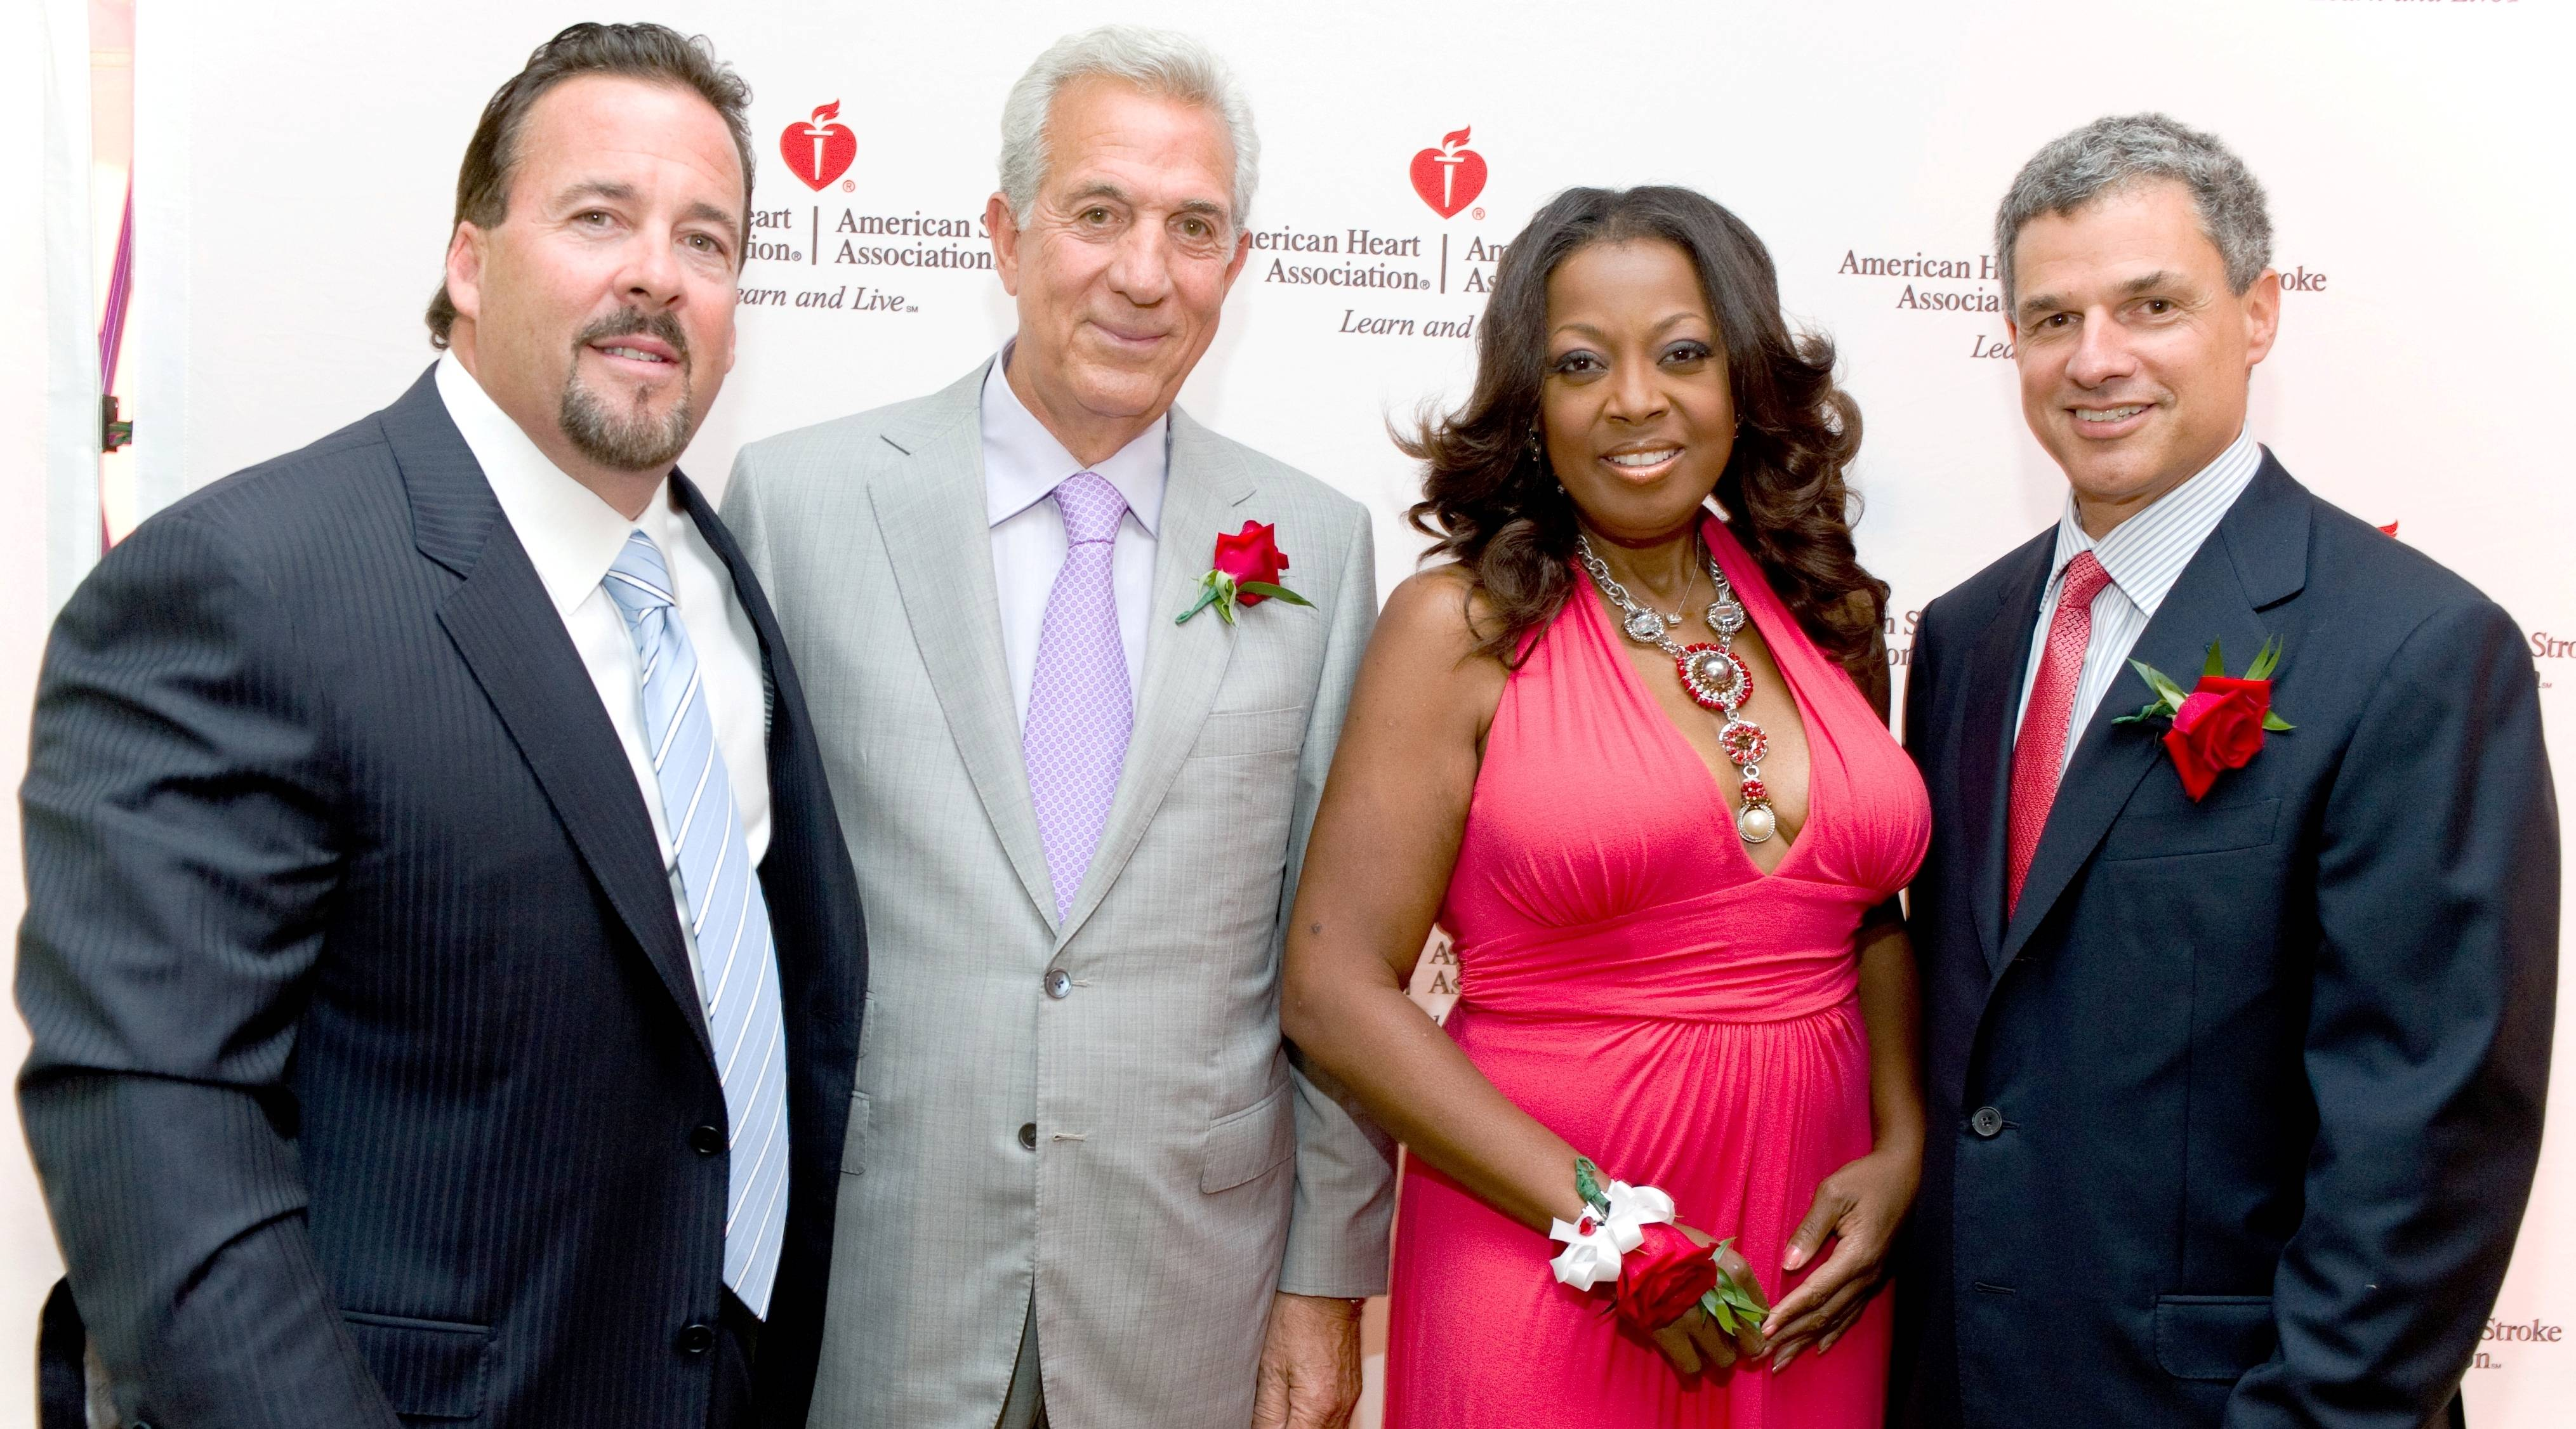 Robert McBride, Charles Gargano, Star Jones and Dr. Todd Rosengart